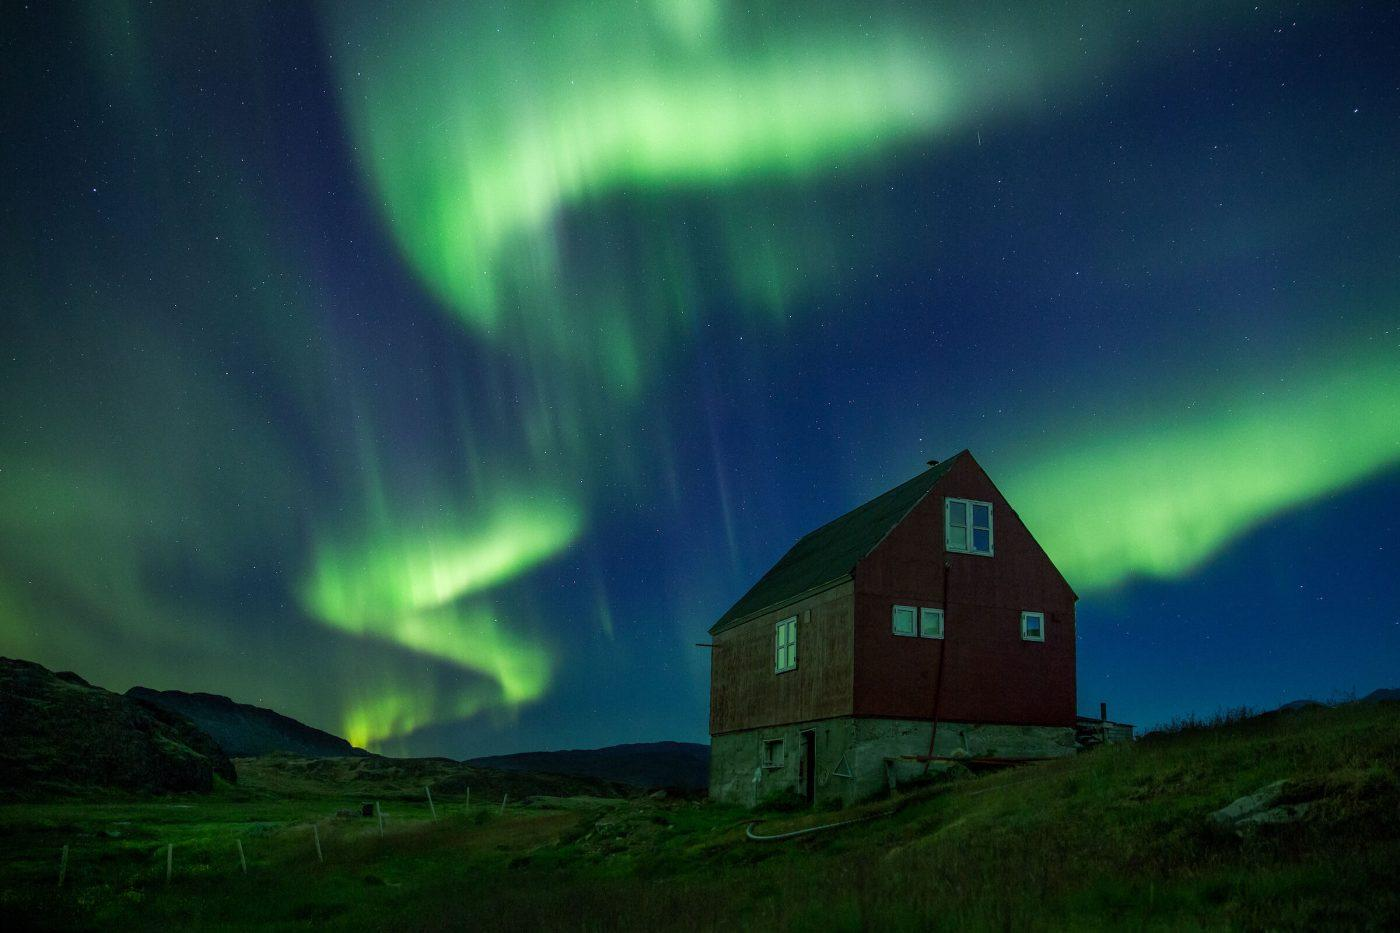 Fall Scenery Wallpaper The Scenery Of The Night Northern Lights Gr 246 Nland